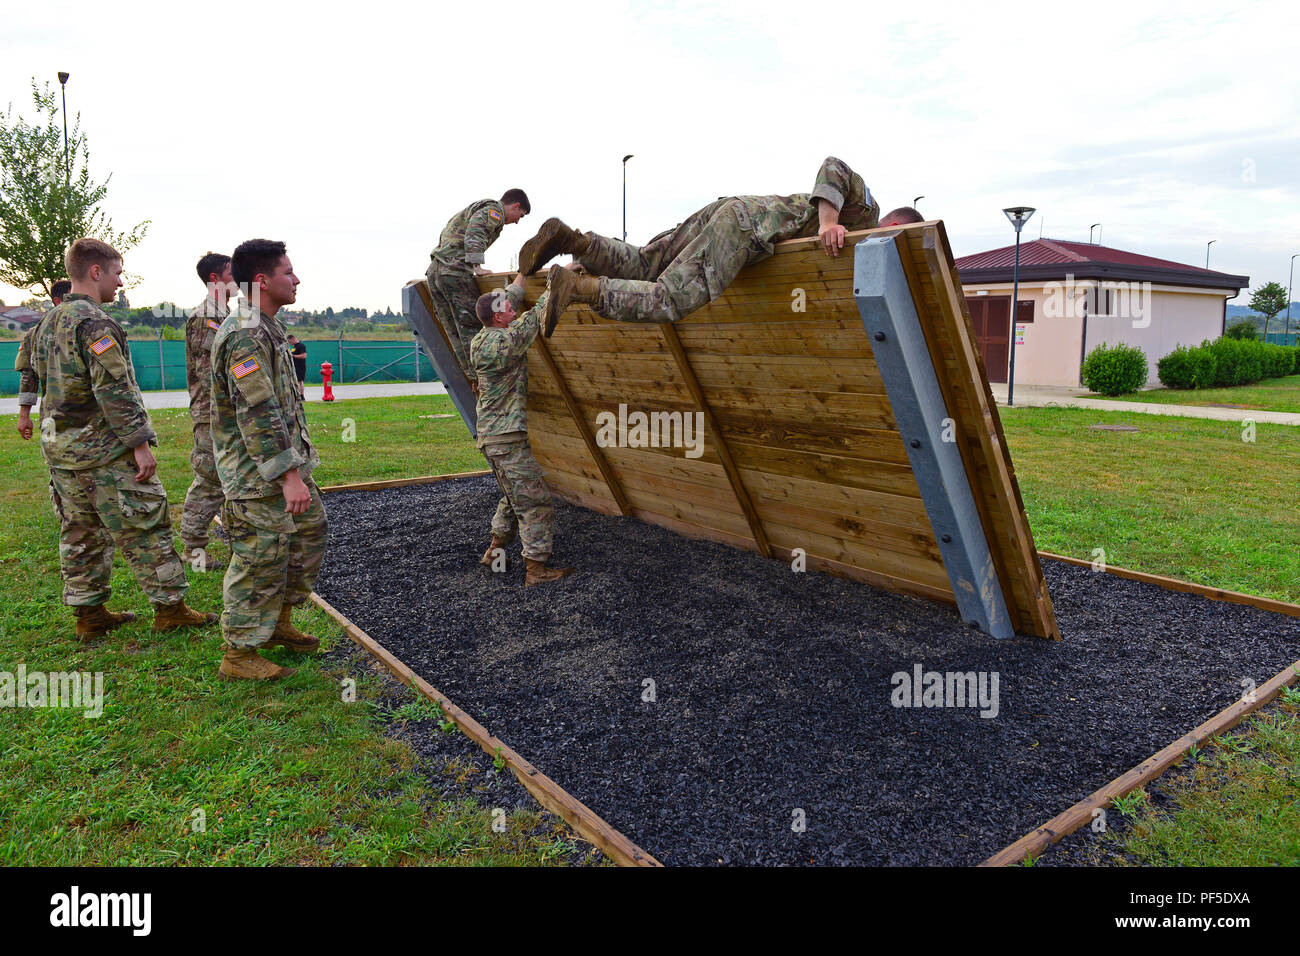 U.S. Army Paratroopers, assigned to the 2nd Battalion, 503rd Infantry Regiment, 173rd Airborne Brigade, jump over a slanted wall during the obstacle course at Caserma Del Din, Vicenza Italy Aug. 10, 2018. The obstacle course challenges Soldiers in their endurance, form and ability to physically navigate difficult tasks. The course also demands Soldiers to push themselves to conquer fears and gain confidence in their accomplishments. The 173rd Airborne Brigade is the U.S. Army Contingency Response Force in Europe, capable of projecting ready forces anywhere in the U.S. European, Africa or Centr - Stock Image